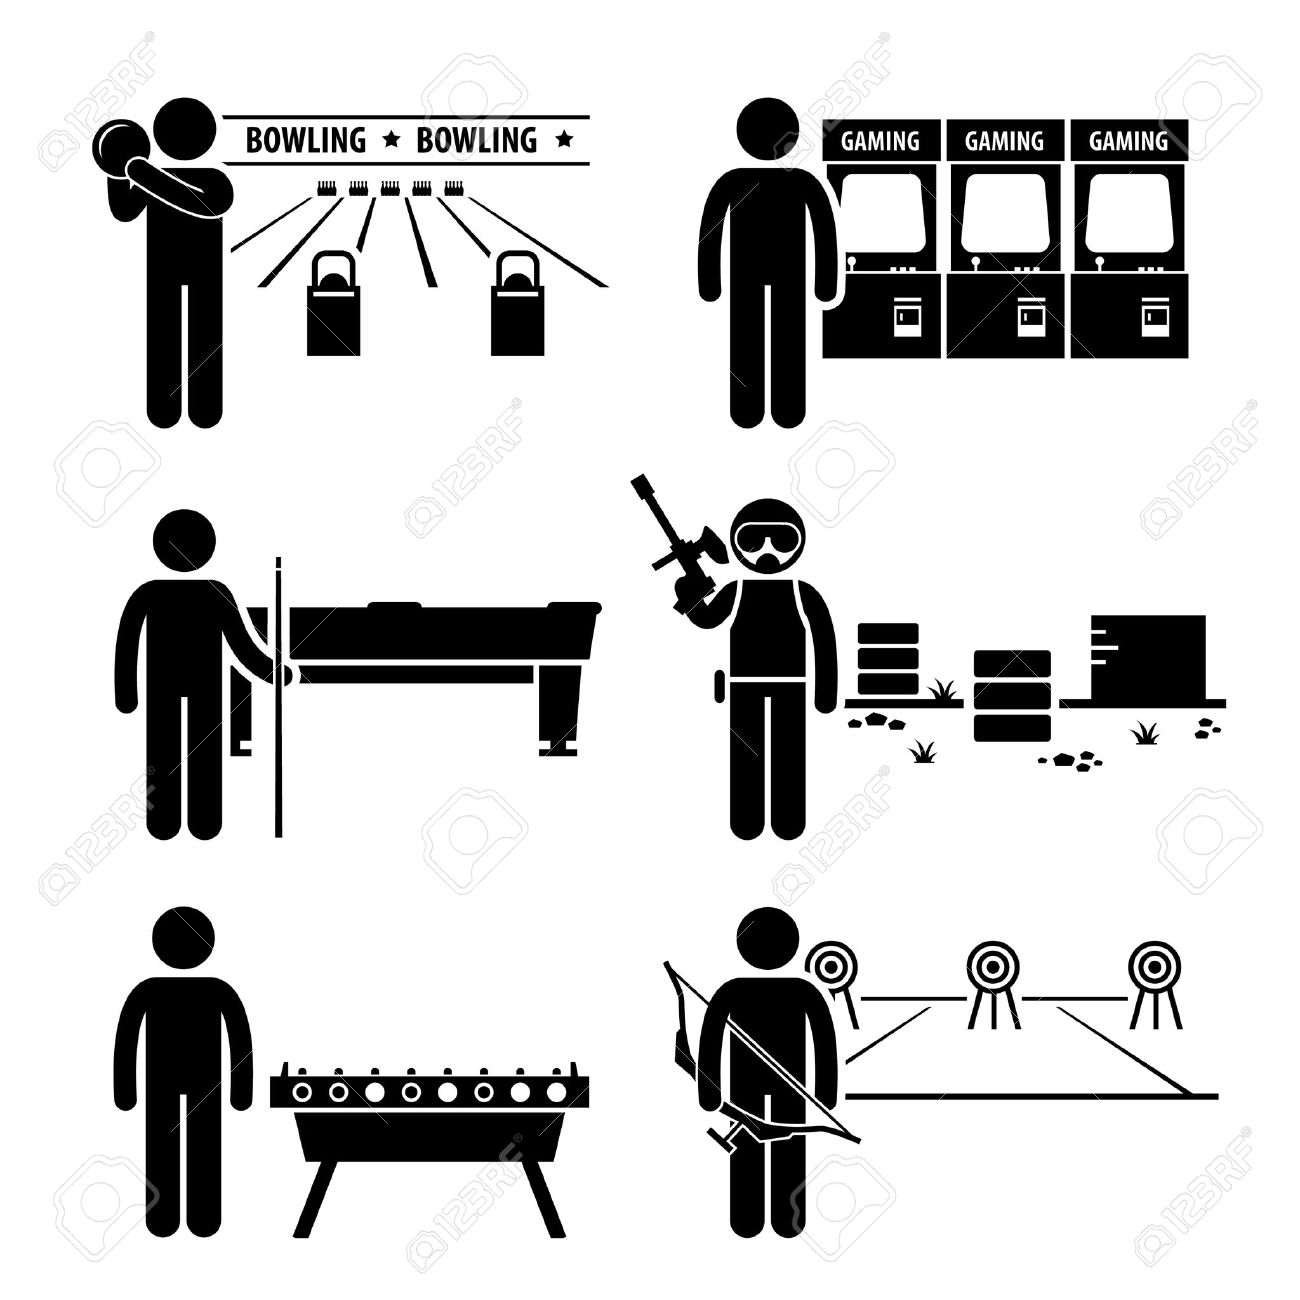 Recreational Leisure Games - Bowling, Arcade Center, Pool, Paintball, Soccer Table, Archery - Stick Figure Pictogram Icon Clipart Banque d'images - 26999409